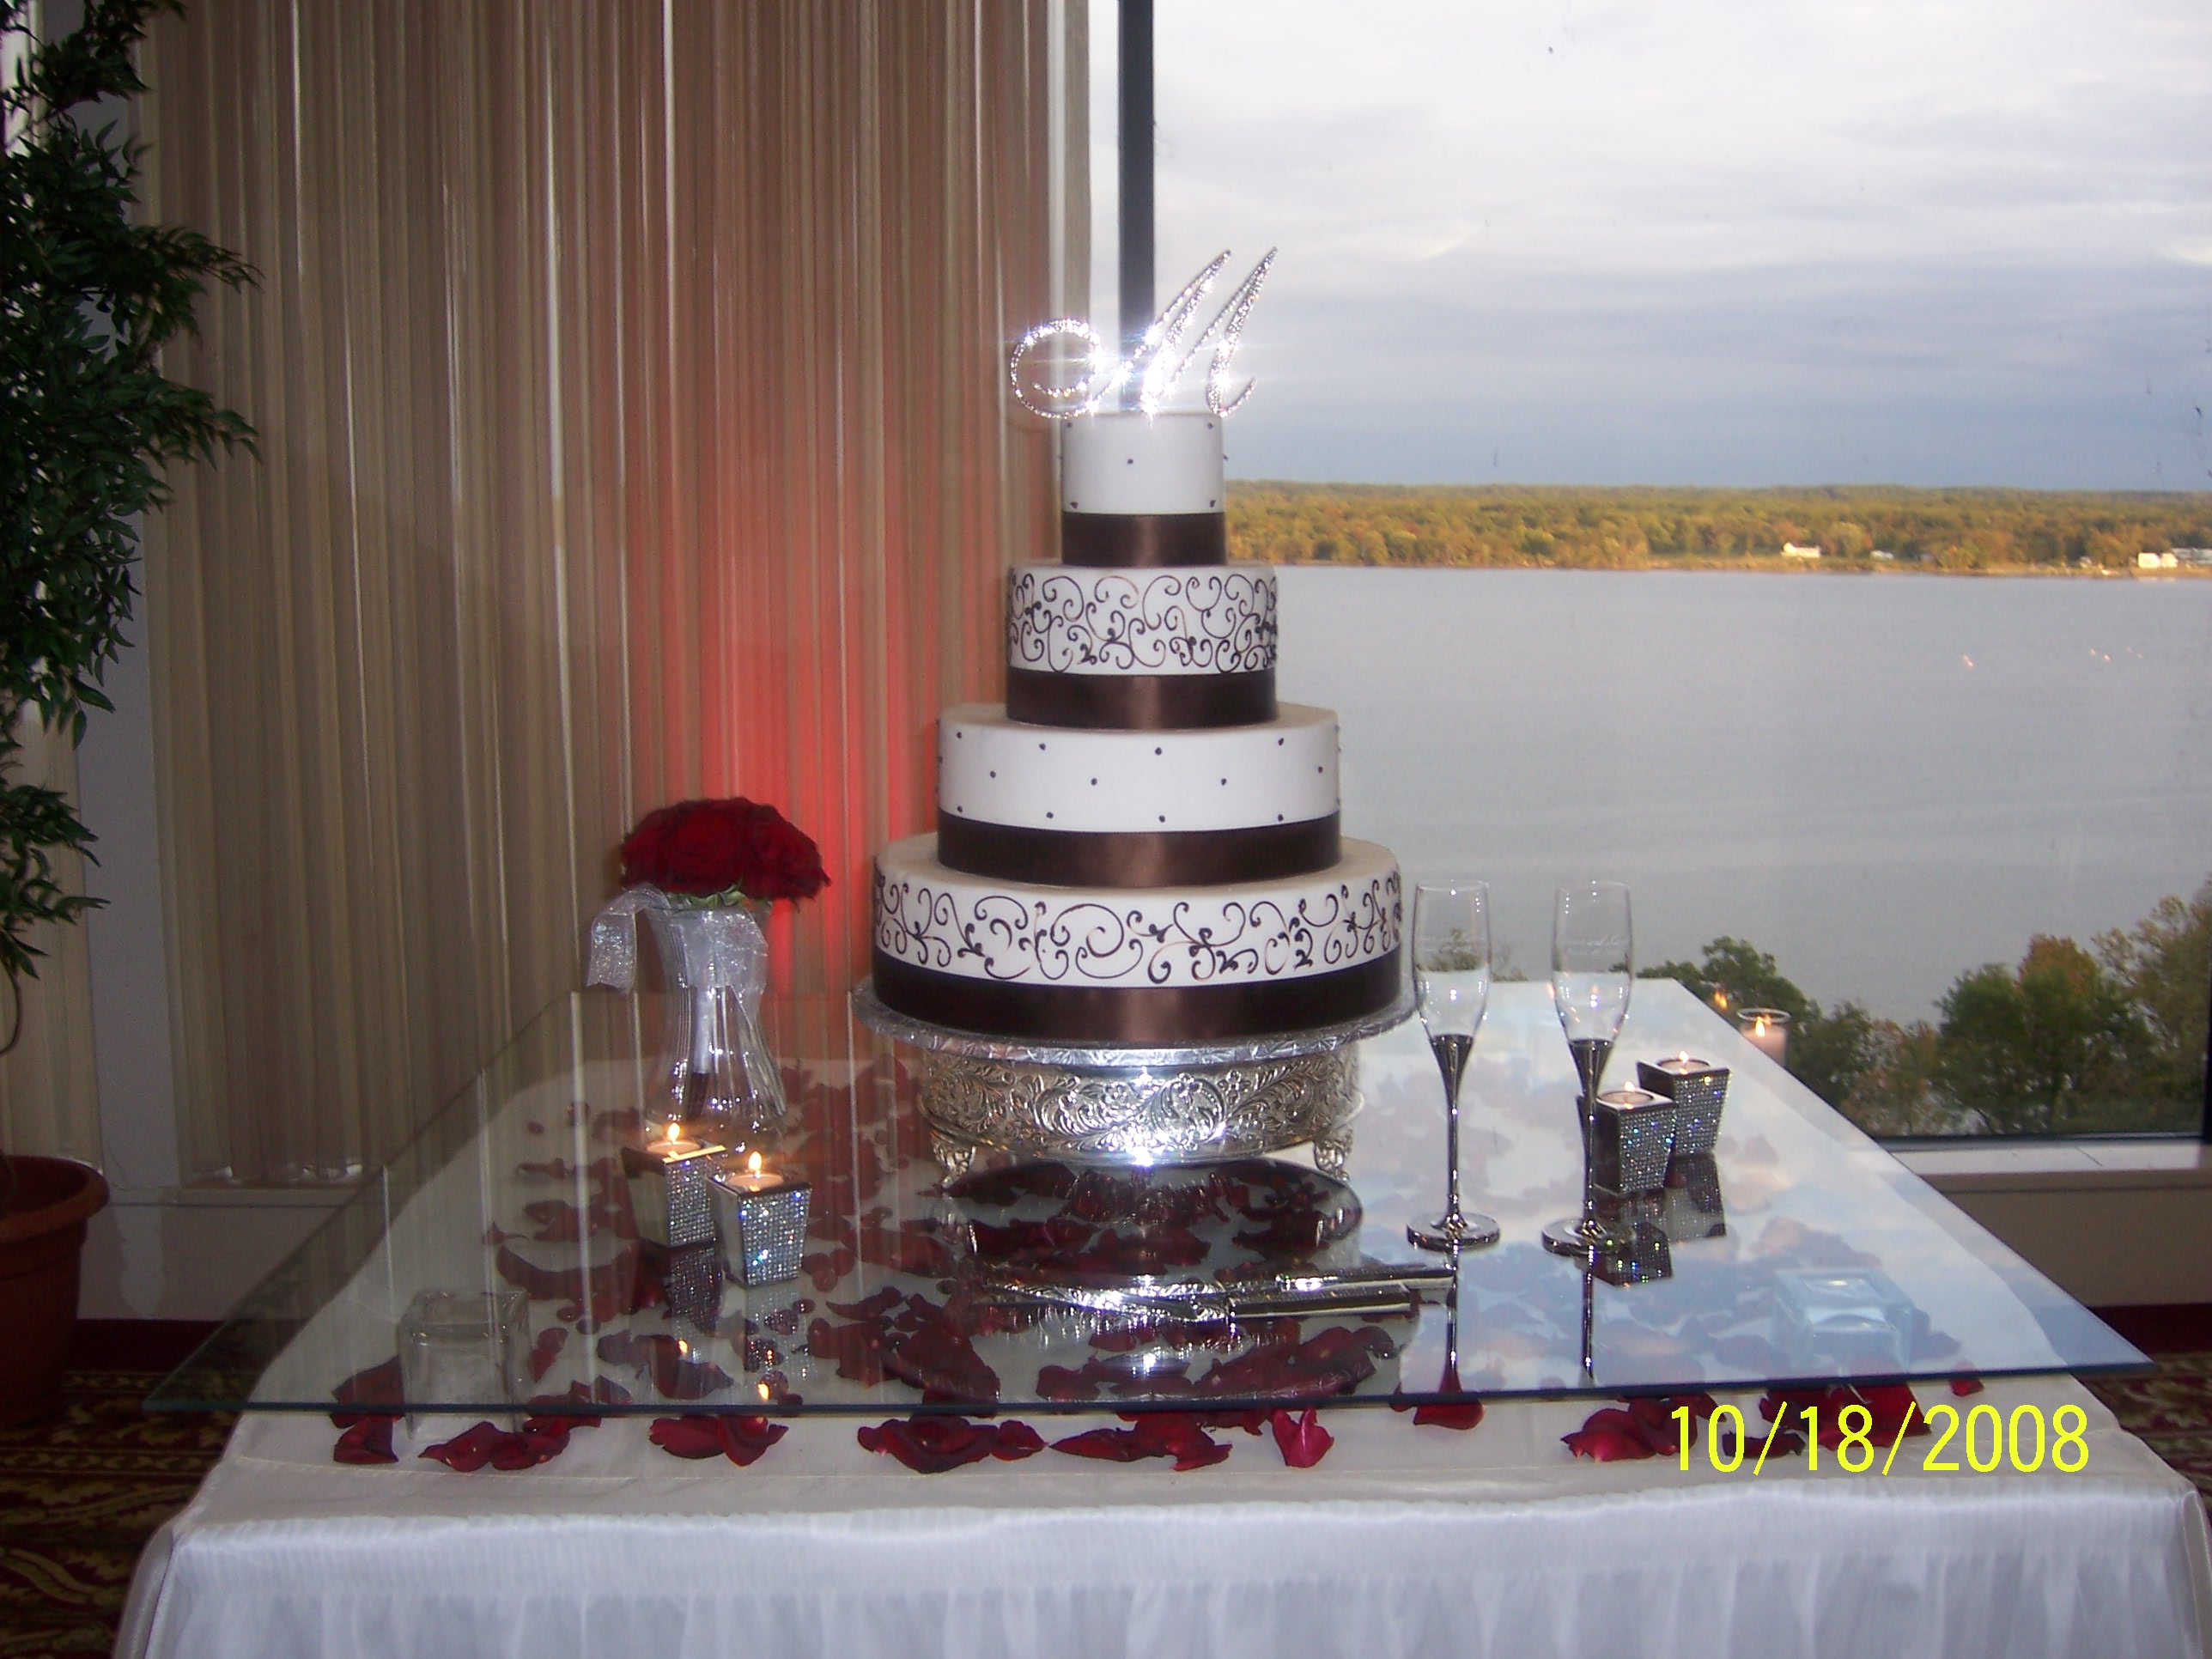 Cake table at Ft. Belvoir Officers Club